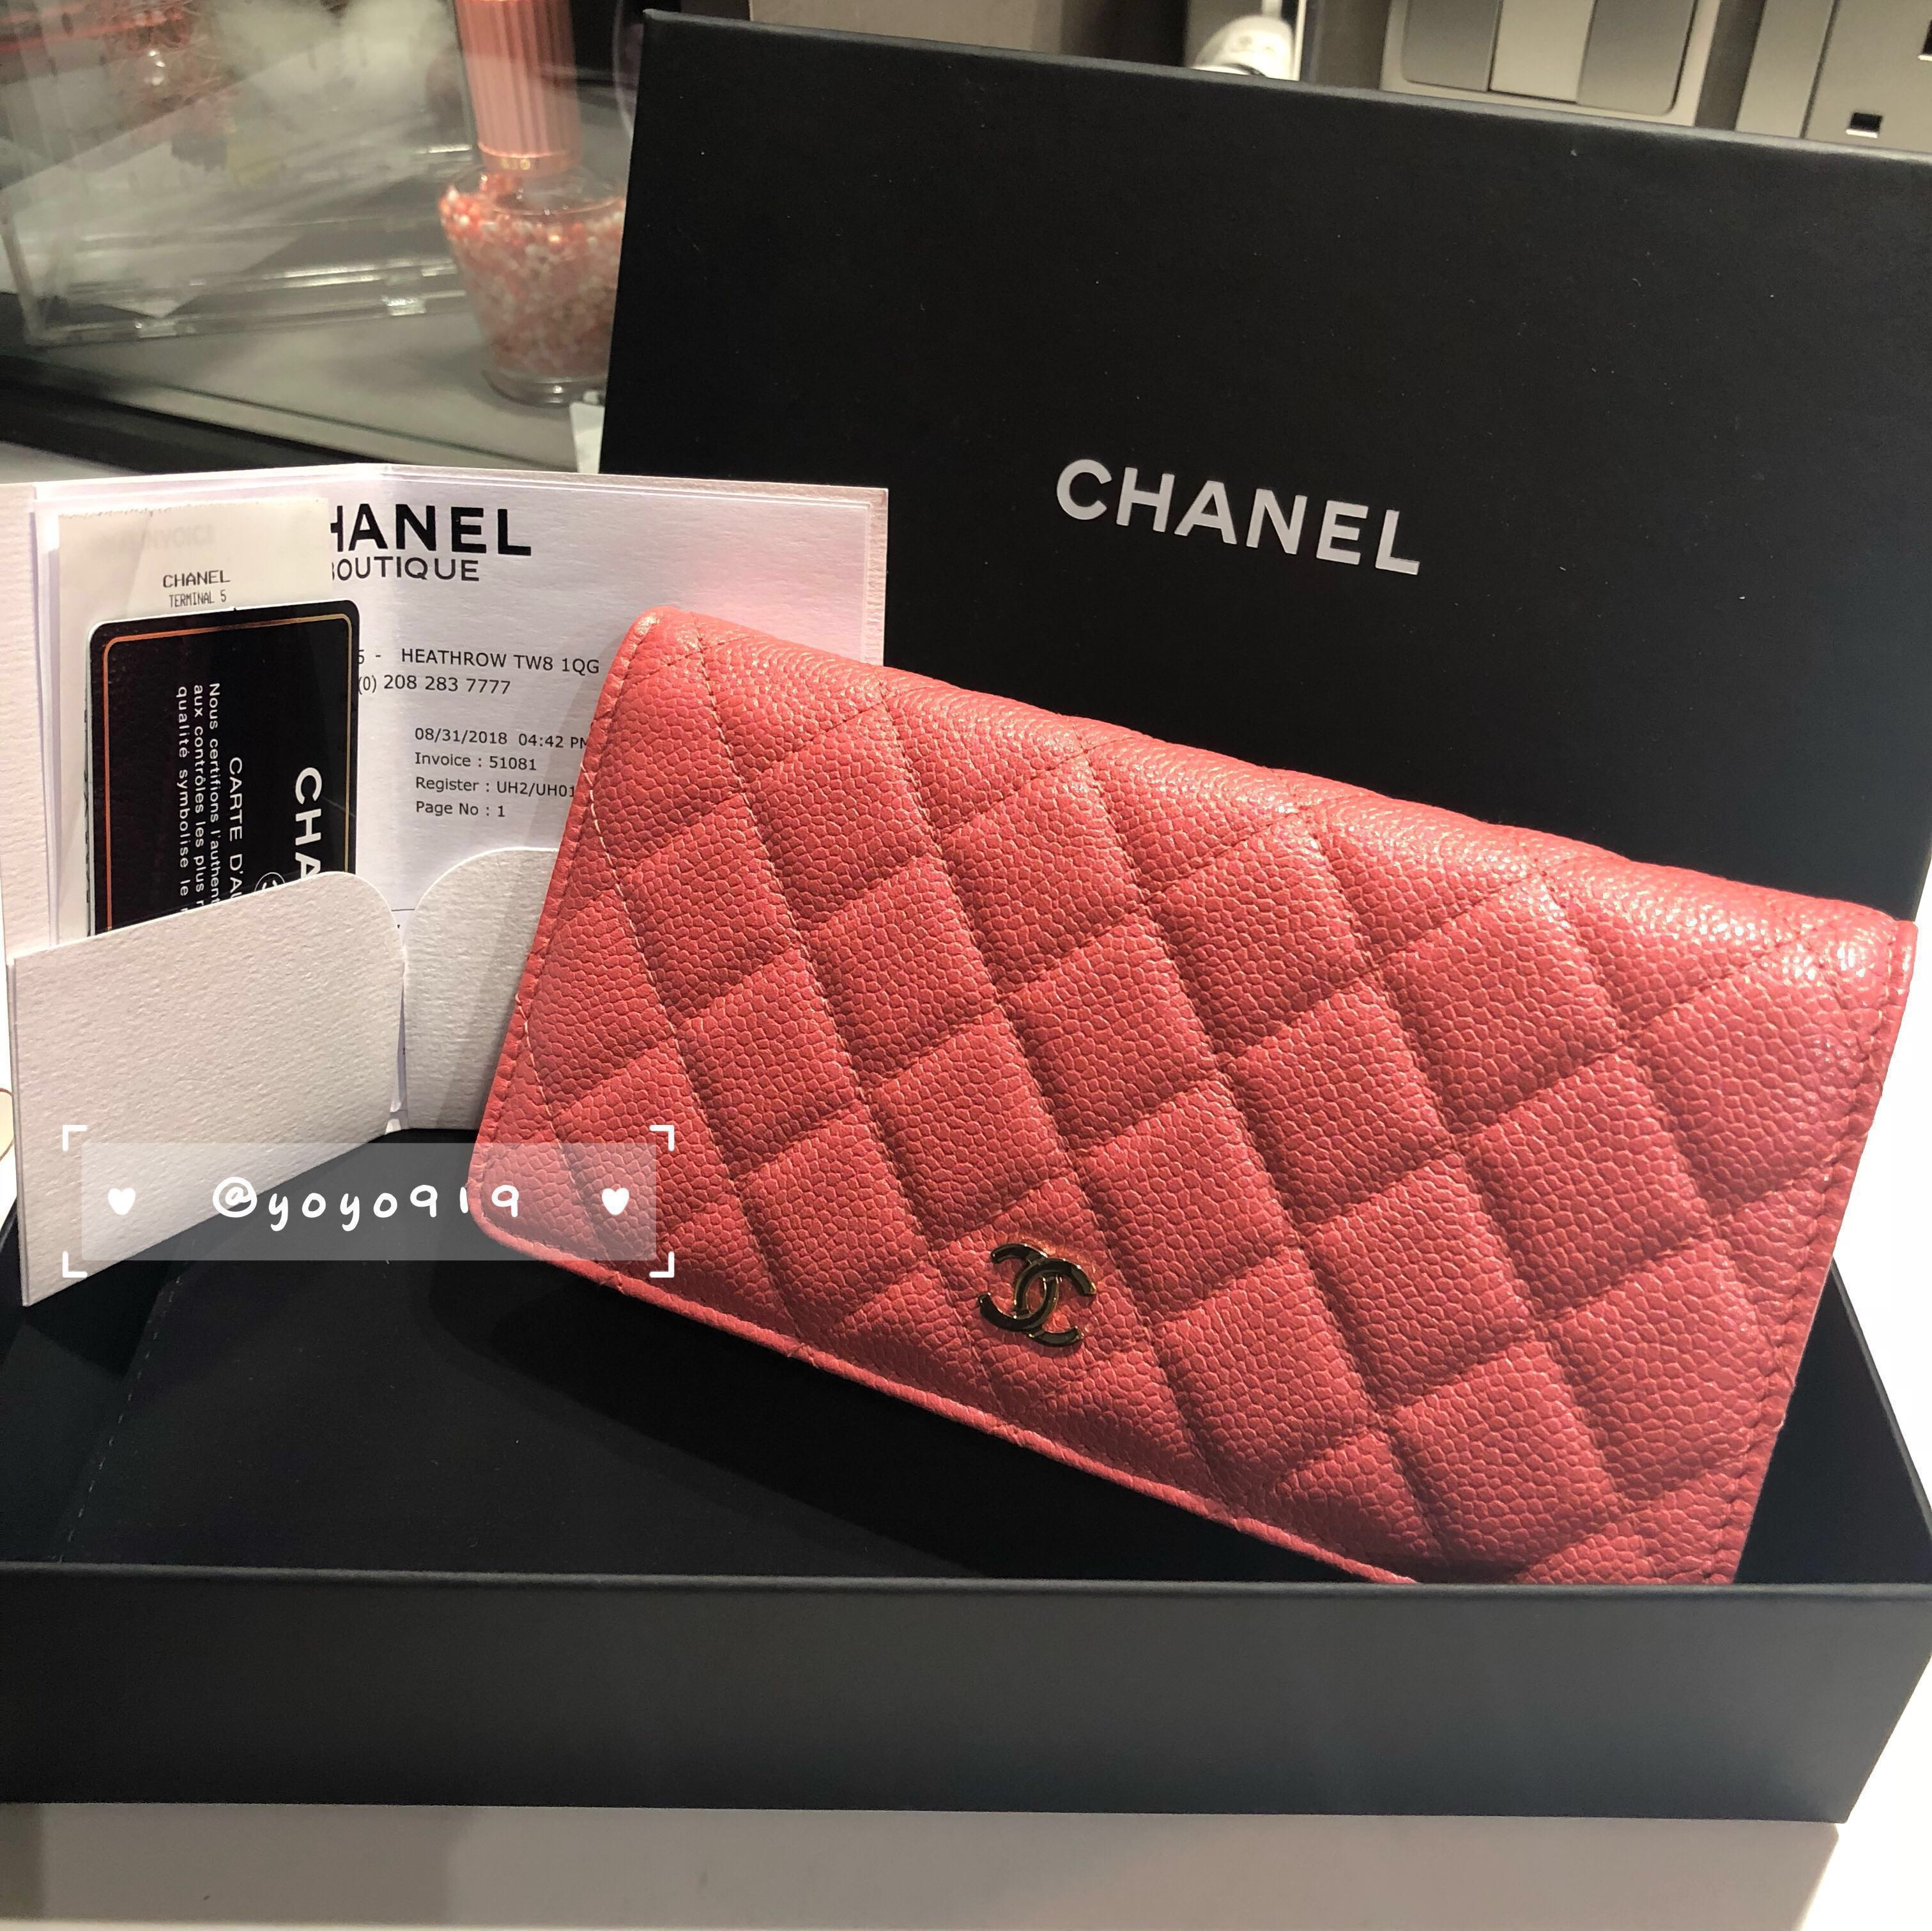 bd5c6ee85b8485 Chanel L-YEN Wallet(NEW! Buy from Aug 31 ), Women's Fashion, Bags & Wallets,  Wallets on Carousell